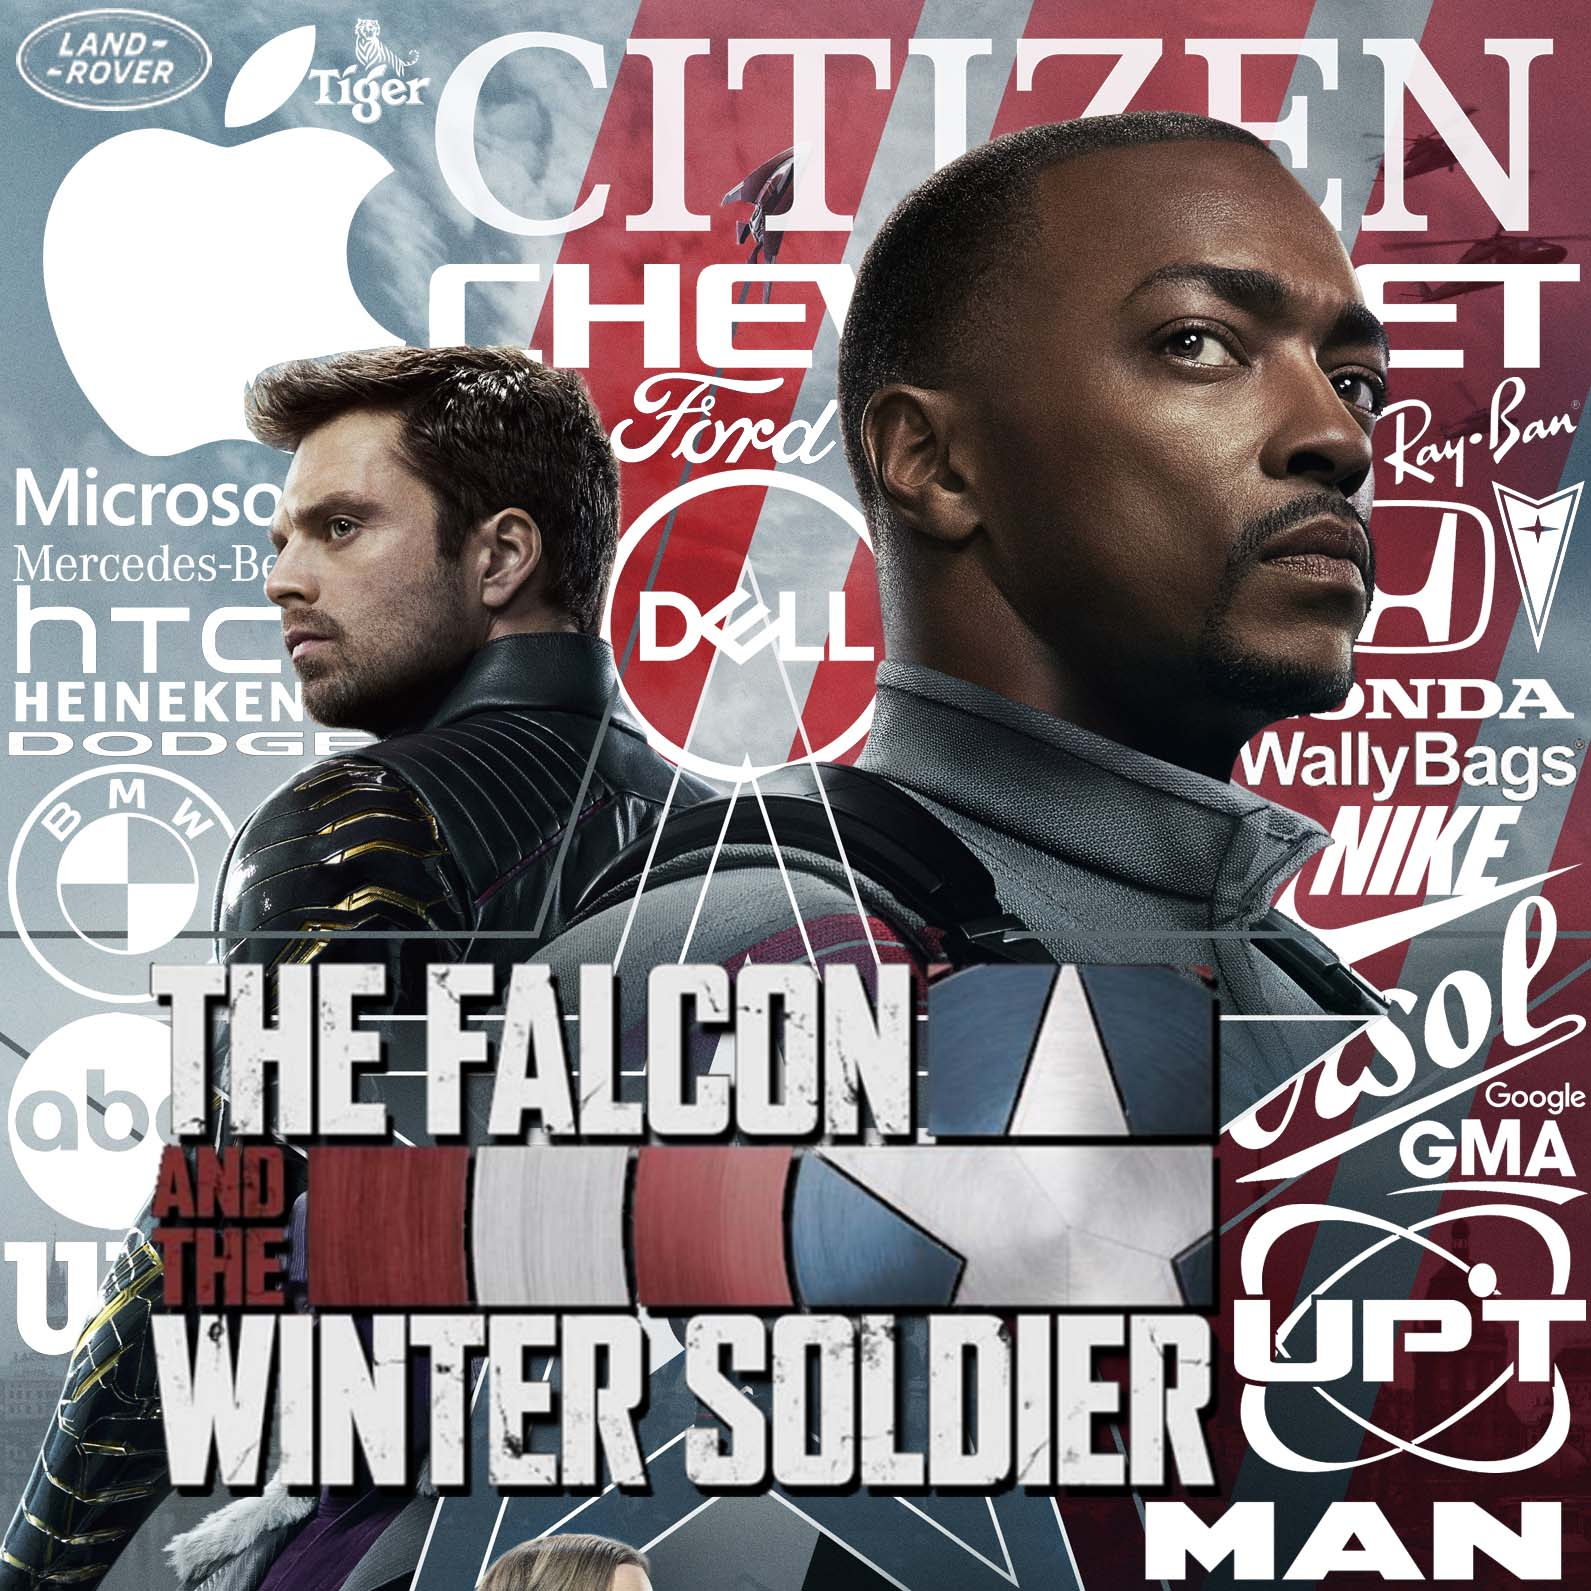 product placement in THE FALCON AND THE WINTER SOLDIER